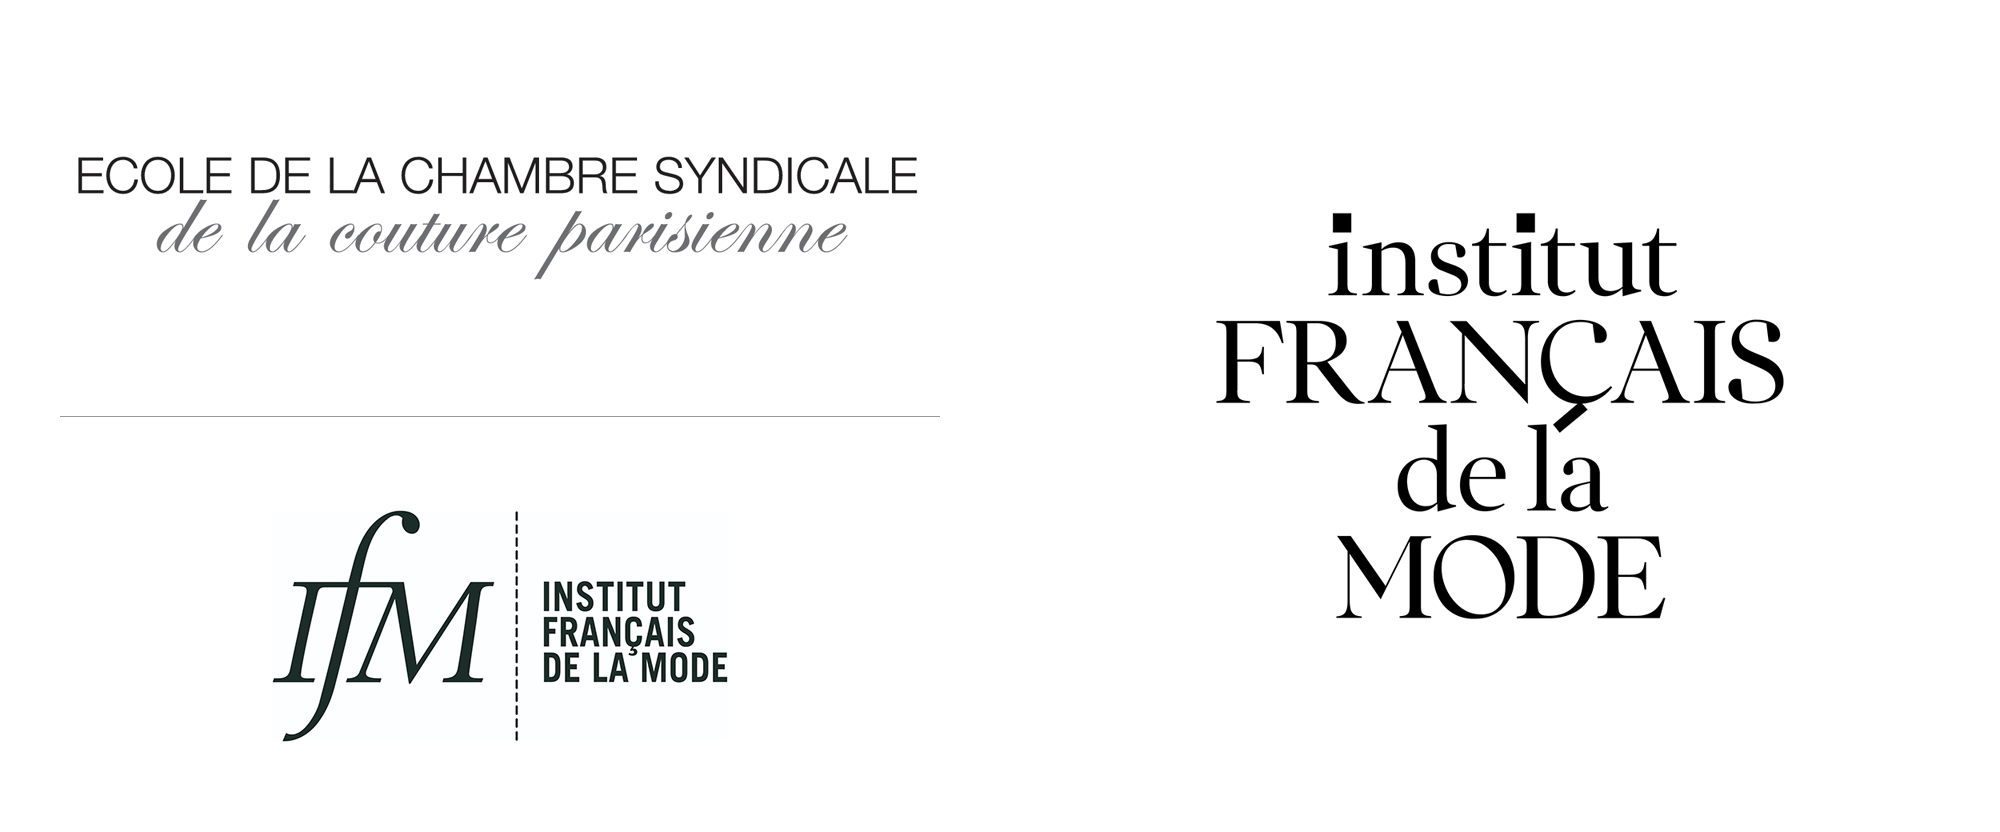 Ecole De La Chambre Syndicale Paris Brand New New Logo And Identity For Institut Français De La Mode